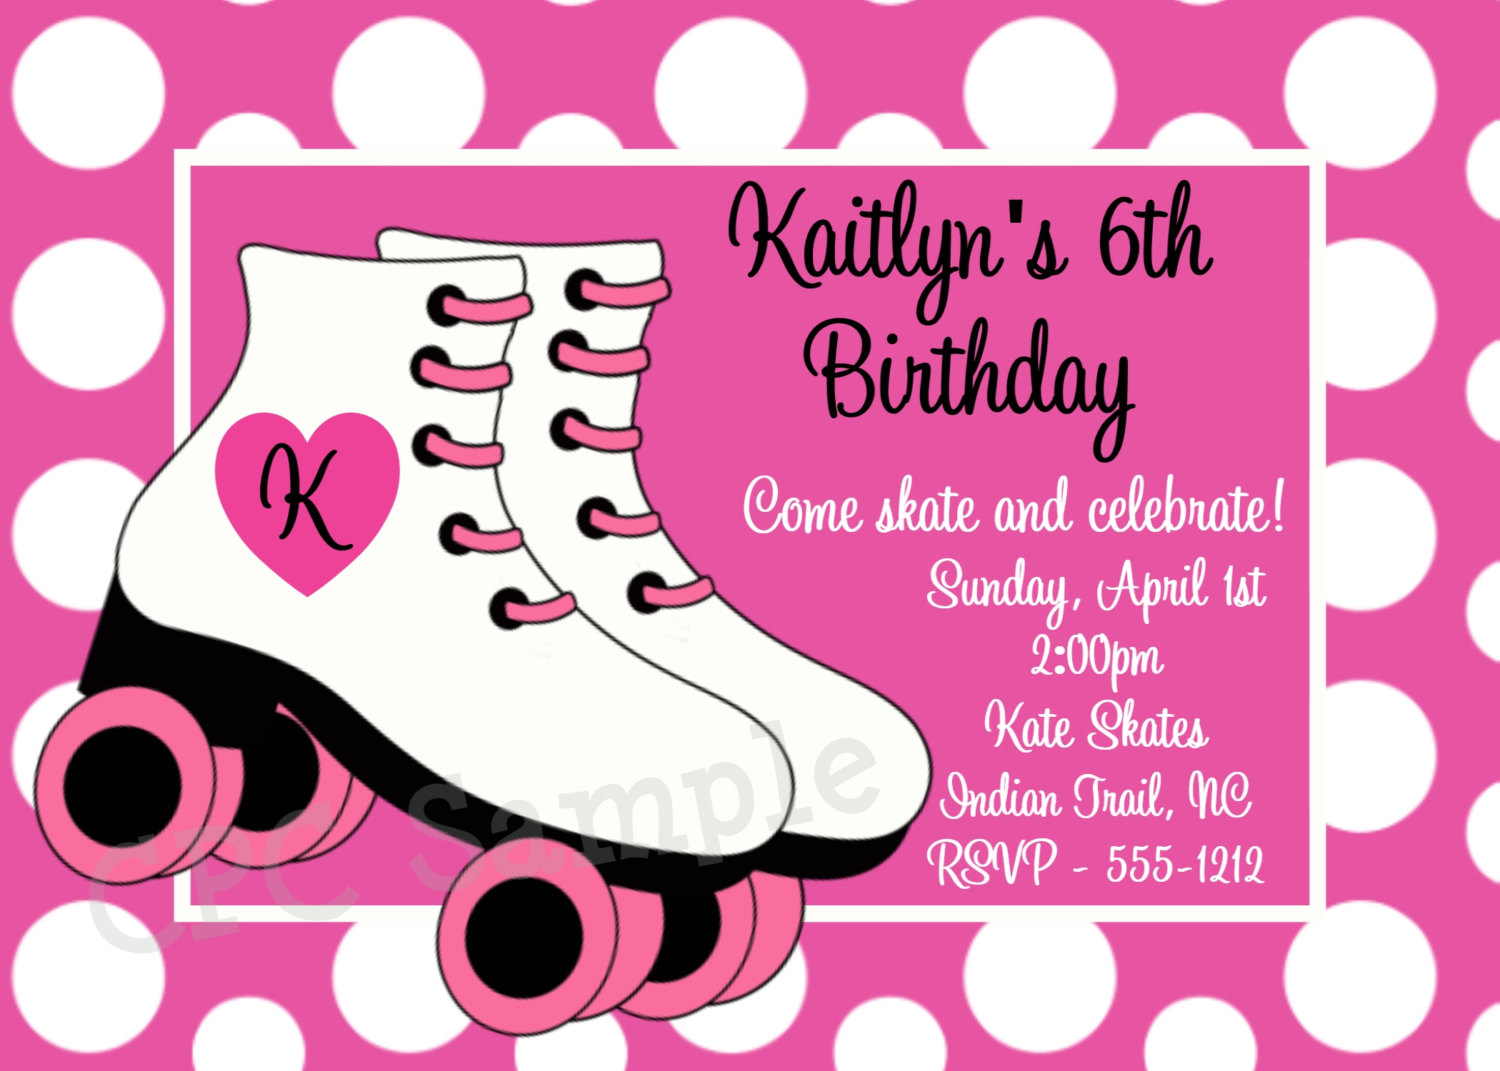 roller skating birthday party invitation template ; Surprising-Roller-Skating-Party-Invitations-Which-Can-Be-Used-As-Party-Invites